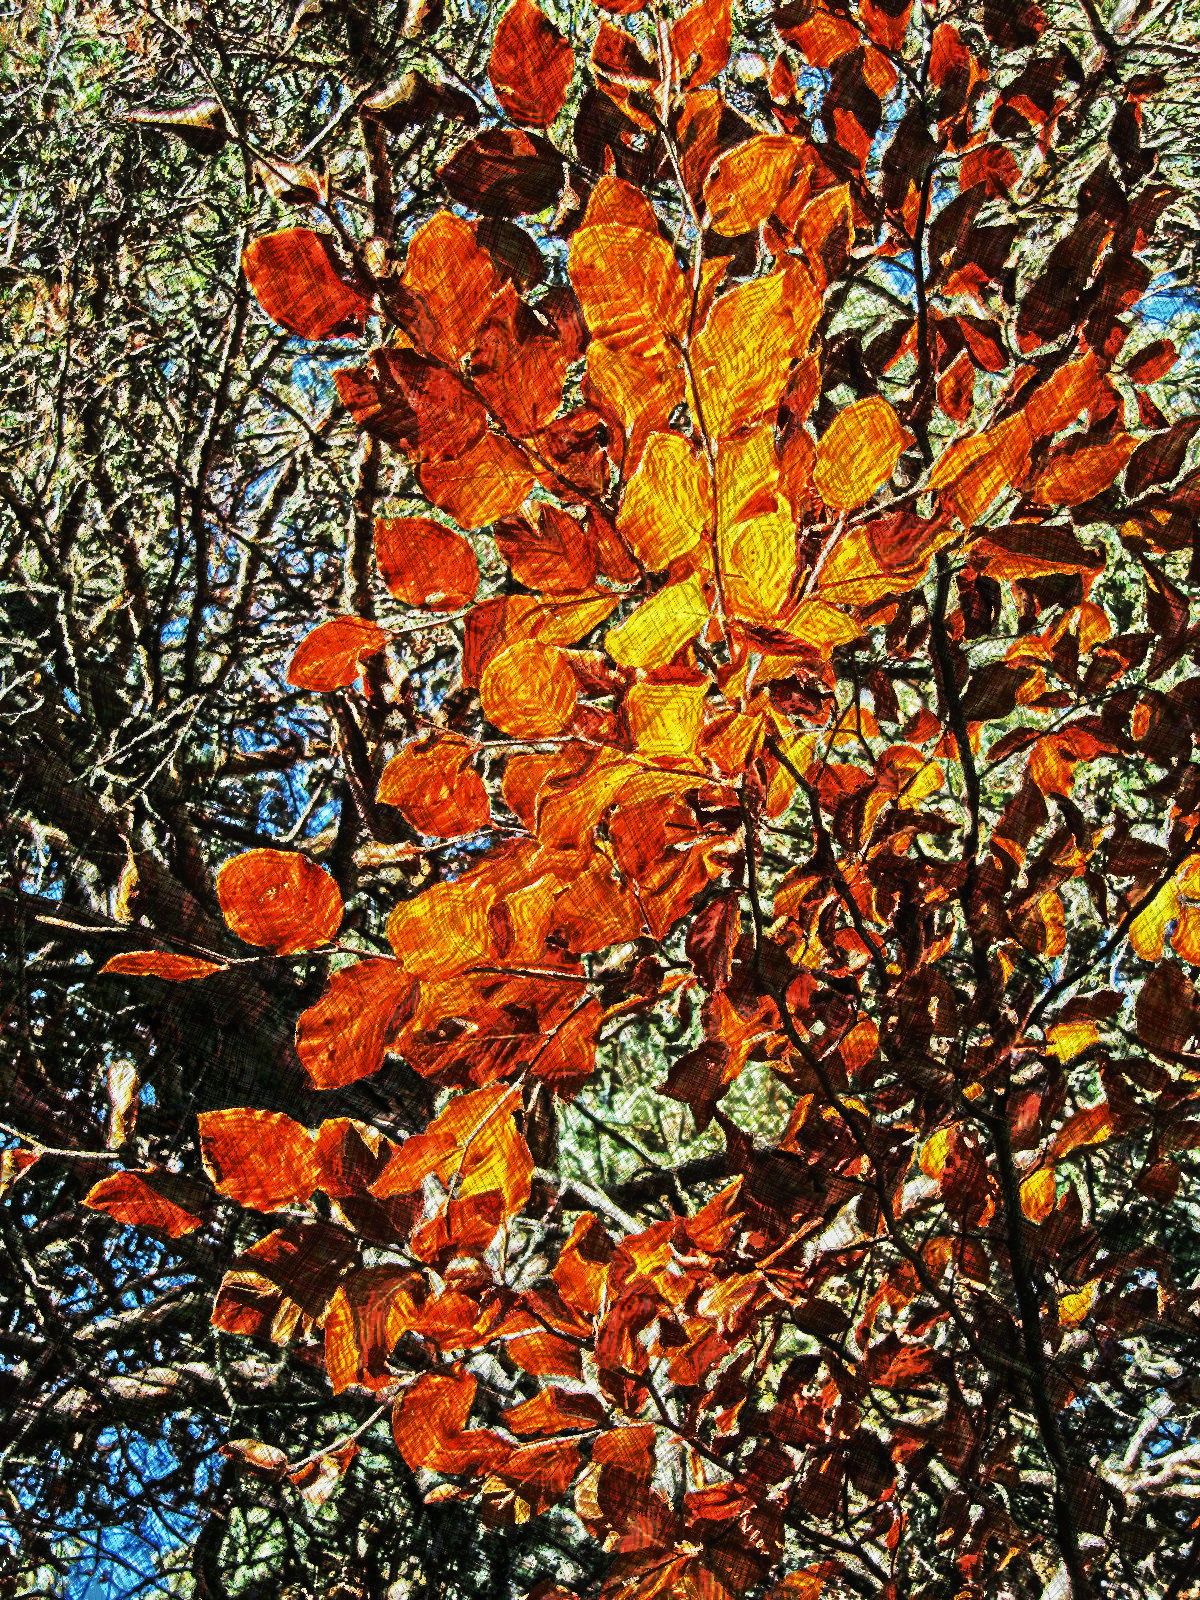 AutumnLeaves-none-intensity7-source.jpg